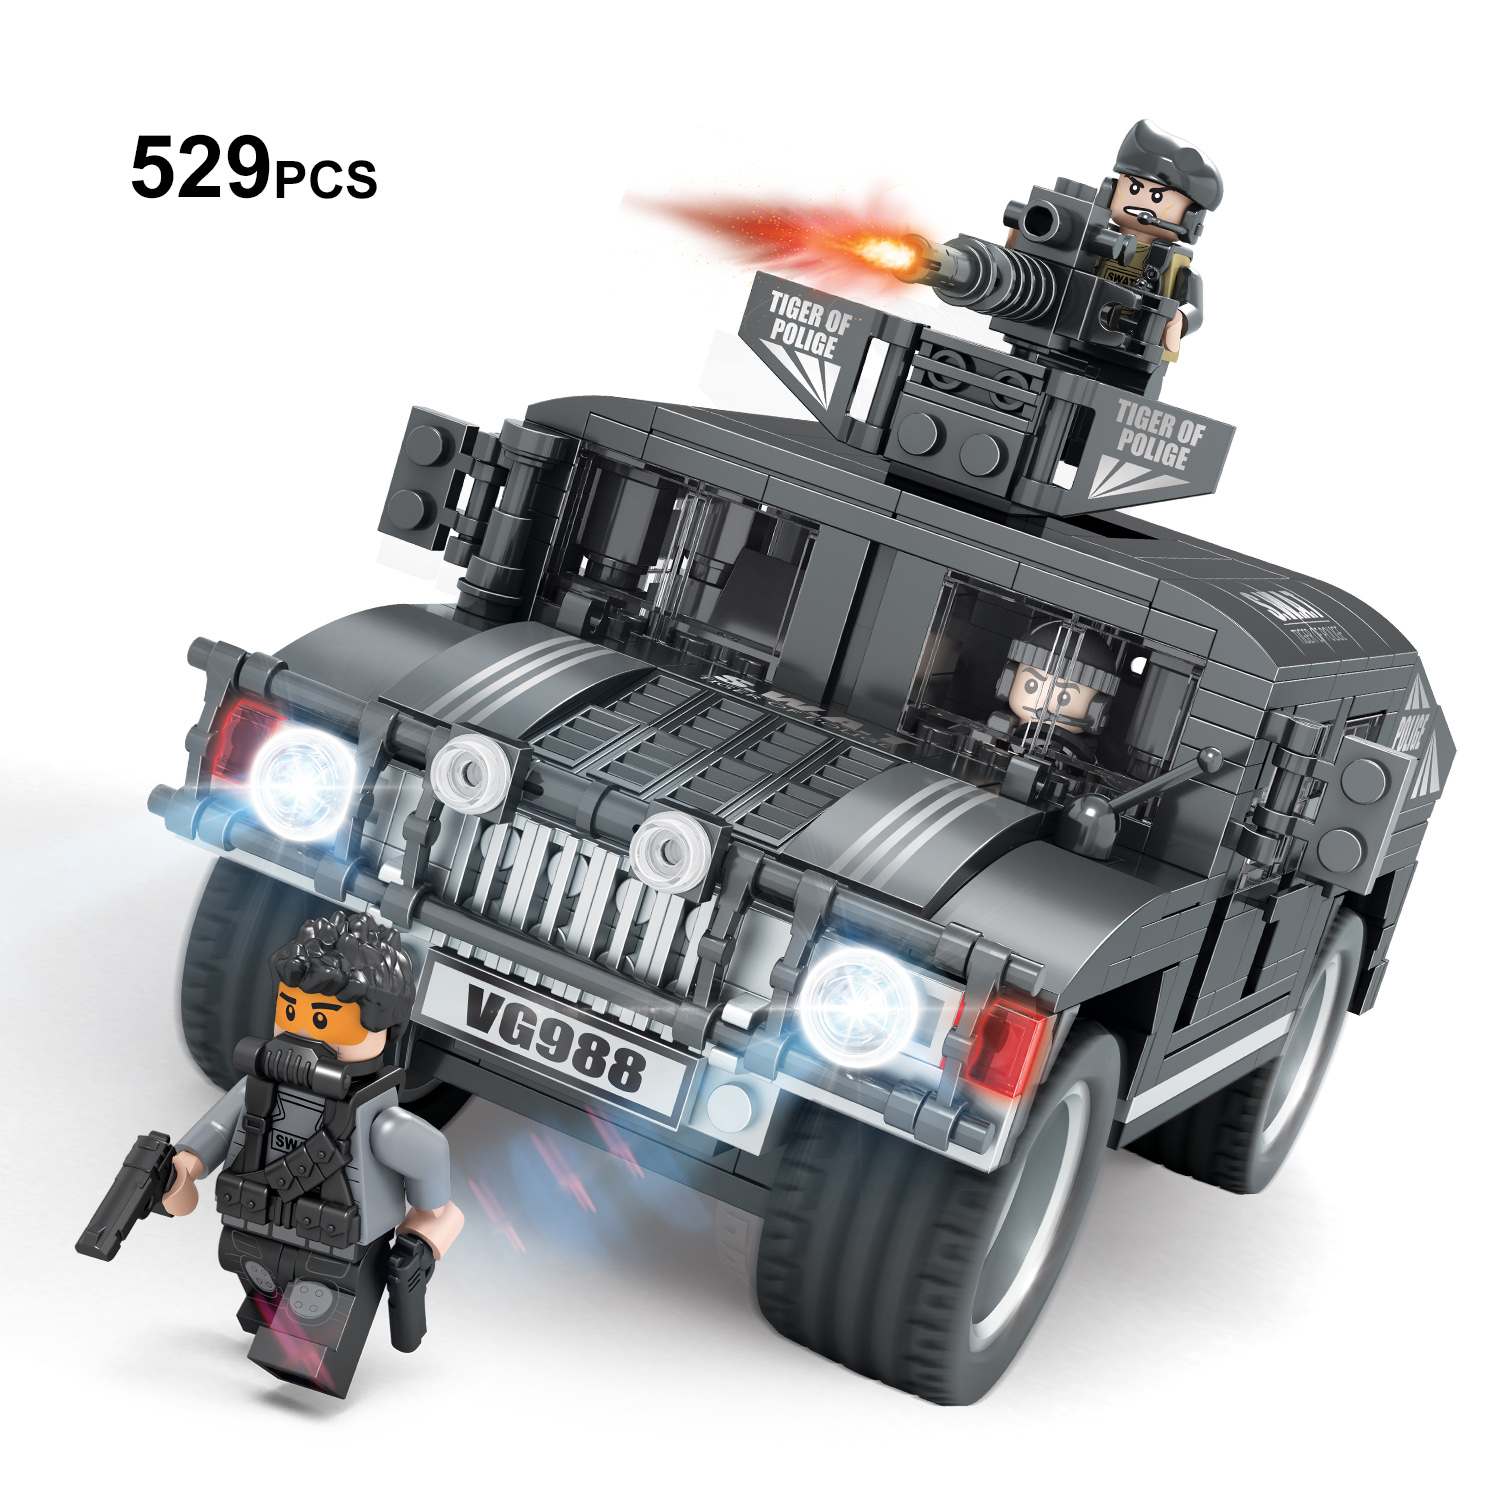 529 Military SWAT Truck Building Blocks Set,Police Jeep Building Bricks Toy with Figures,2 Different Design for Building police station swat hotel police doll military series 3d model building blocks construction eductional bricks building block set